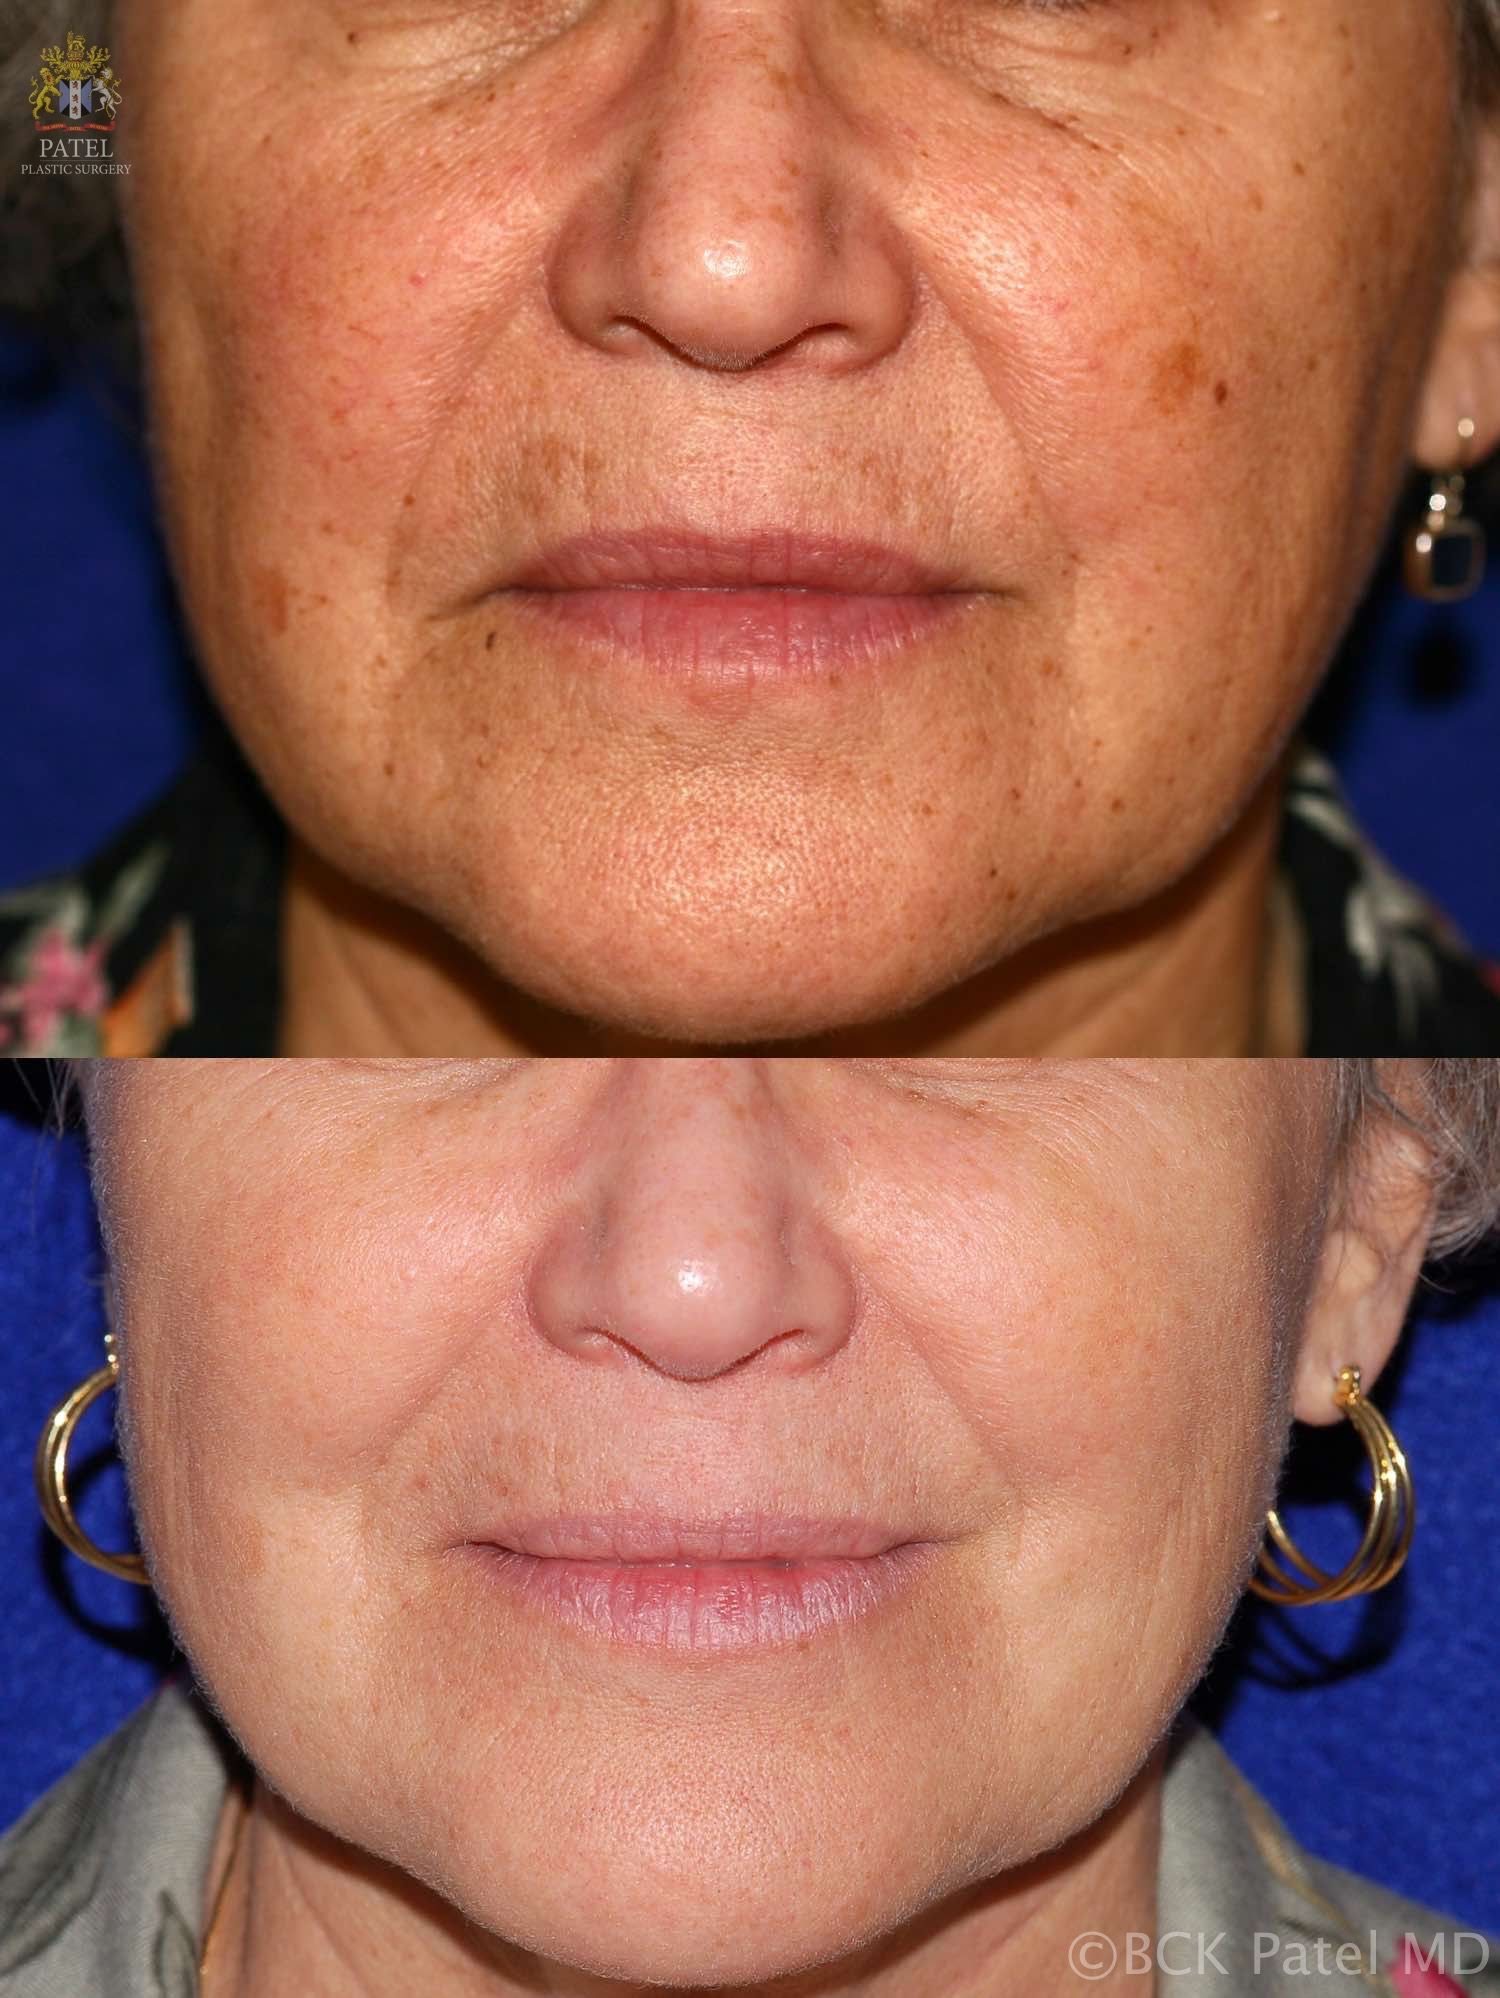 englishsurgeon.com Results of facial fotofacial treatments by Dr. BCK Patel MD, FRCS, Salt Lake City, St George